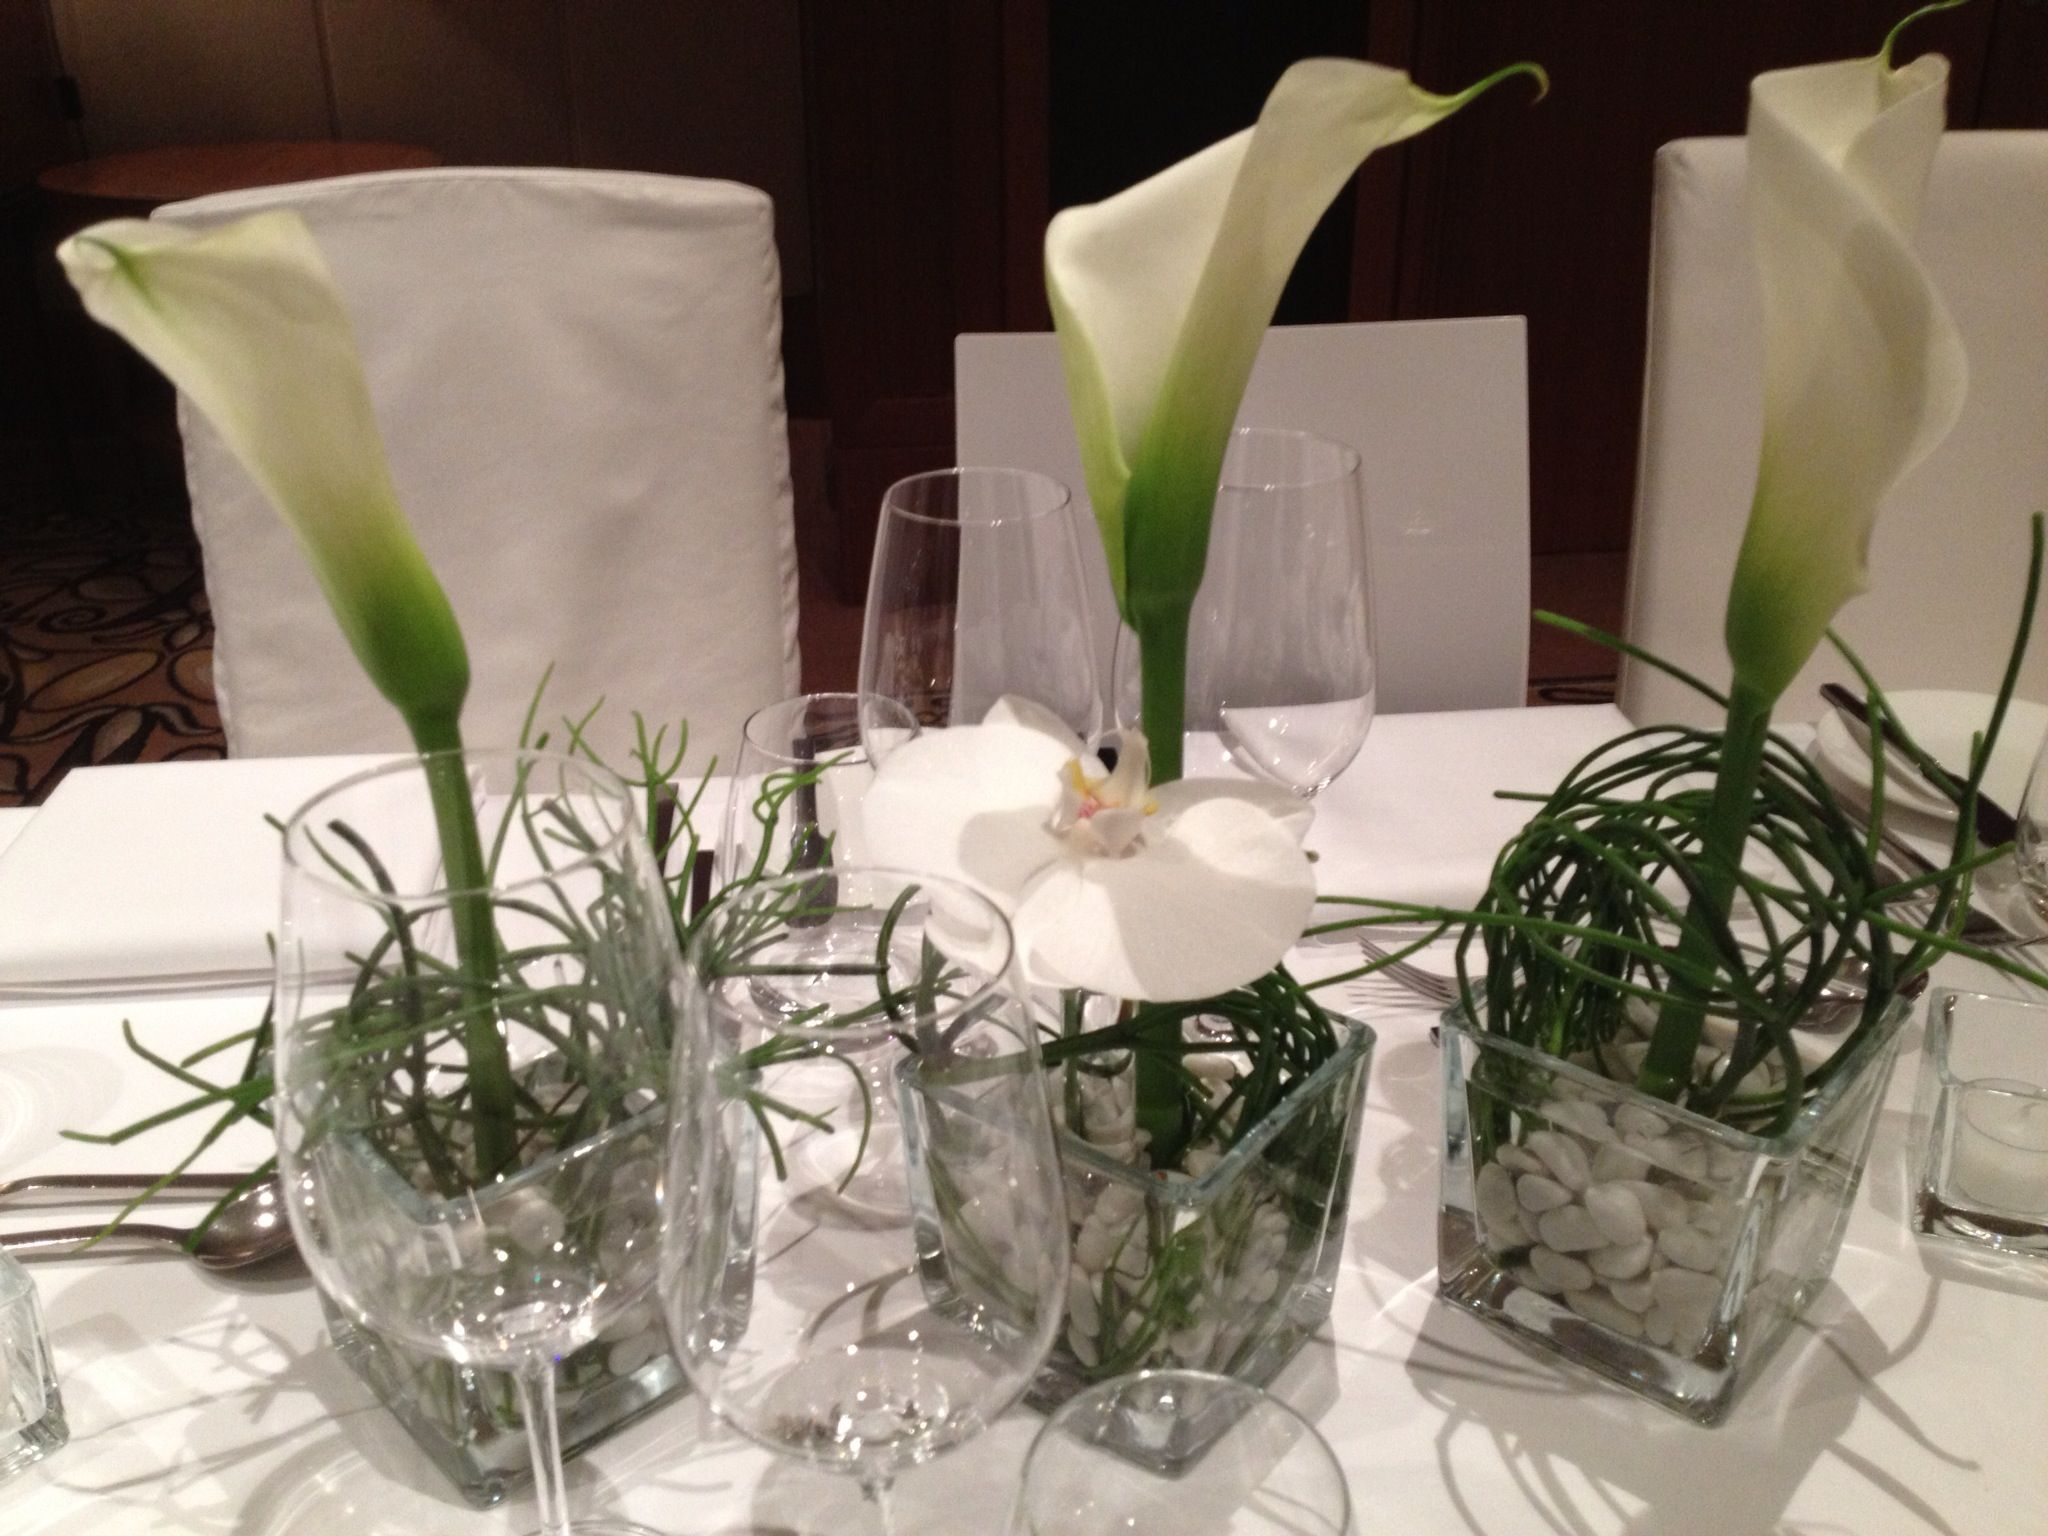 Silberhochzeit Blumen Tischdekoration Tabledecoration Flowers Callas White In